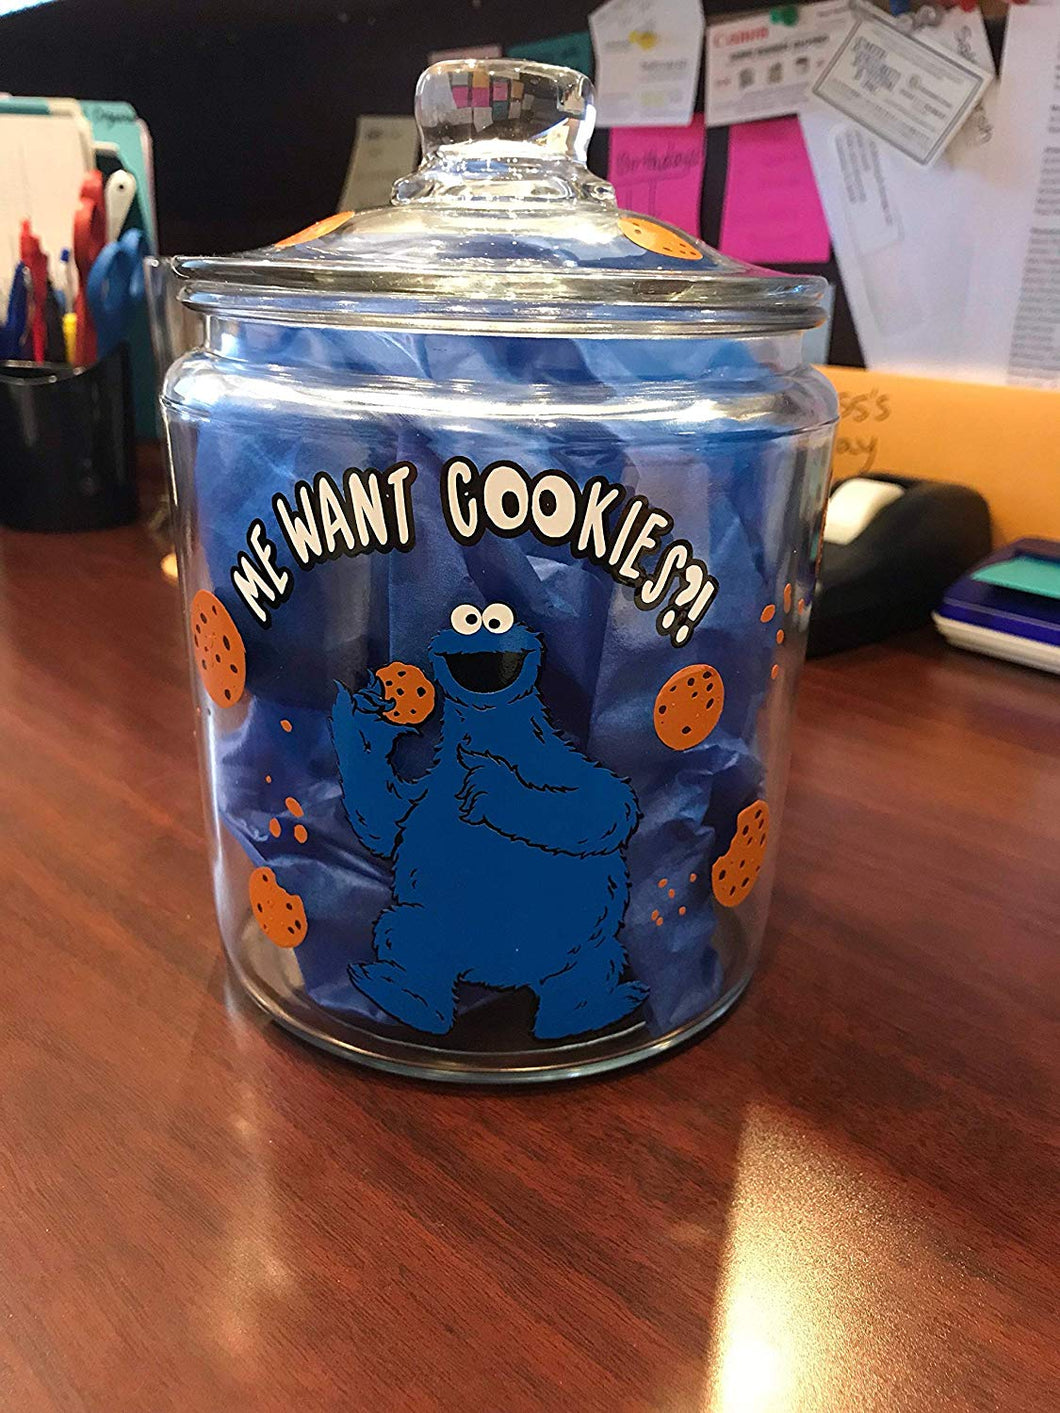 Cookie Jar Vinyl Decal DIY cookie jar decor comes with Cookie Monster, writing, cookies and crumbs decal only